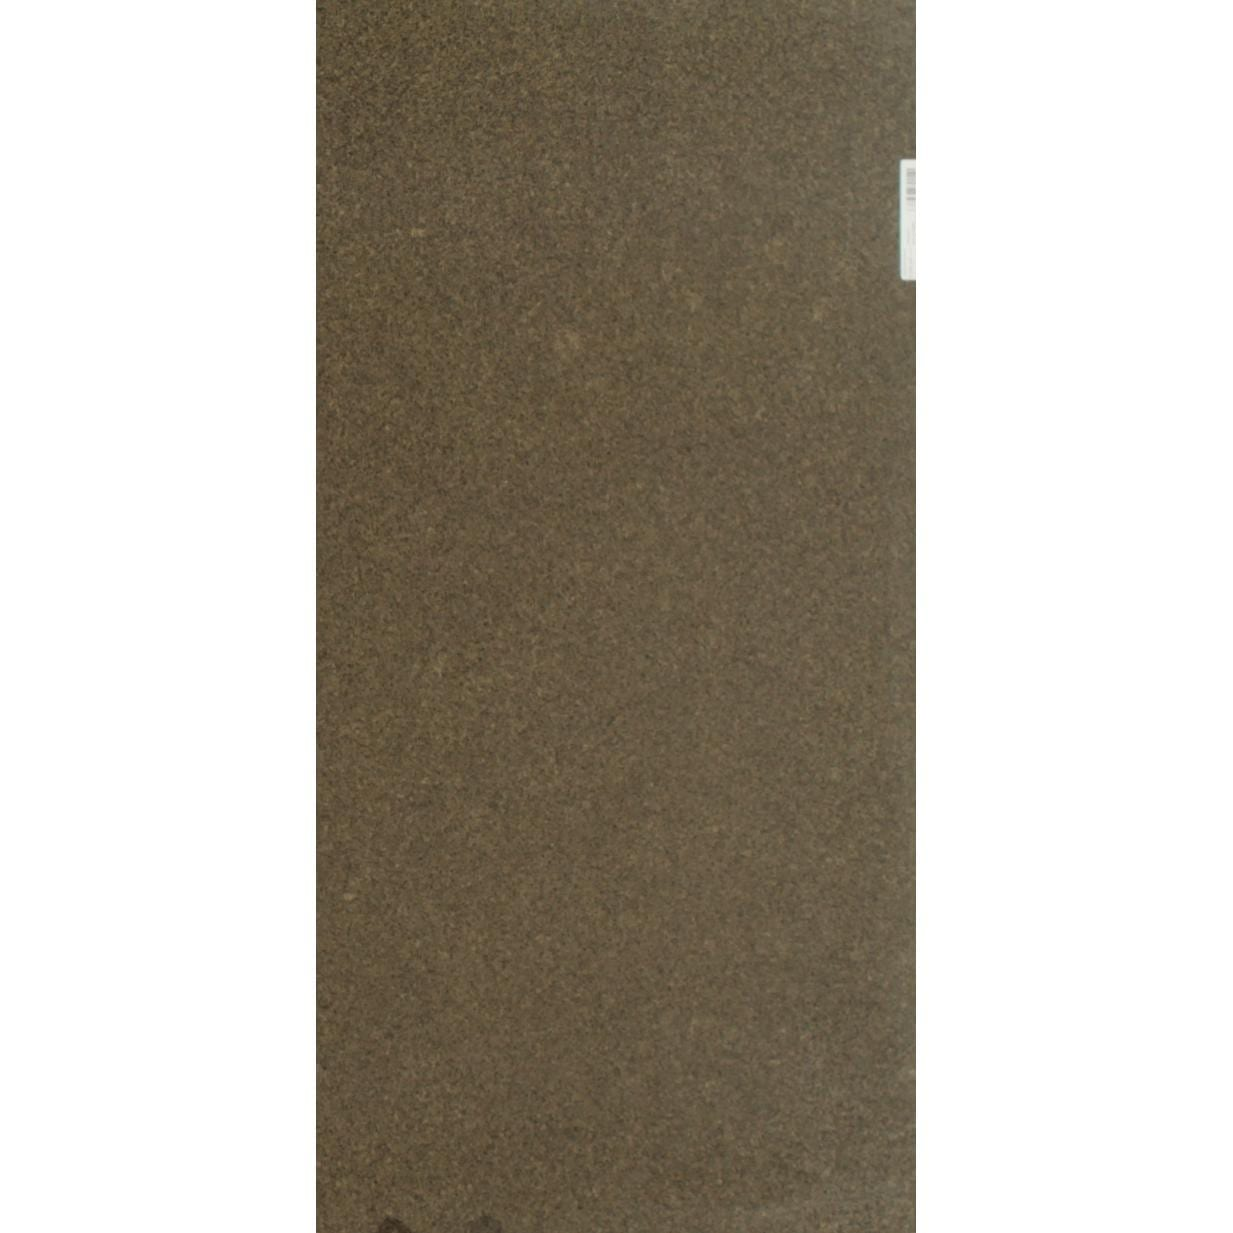 Image for Zodiaq 24820-1: Warm Taupe